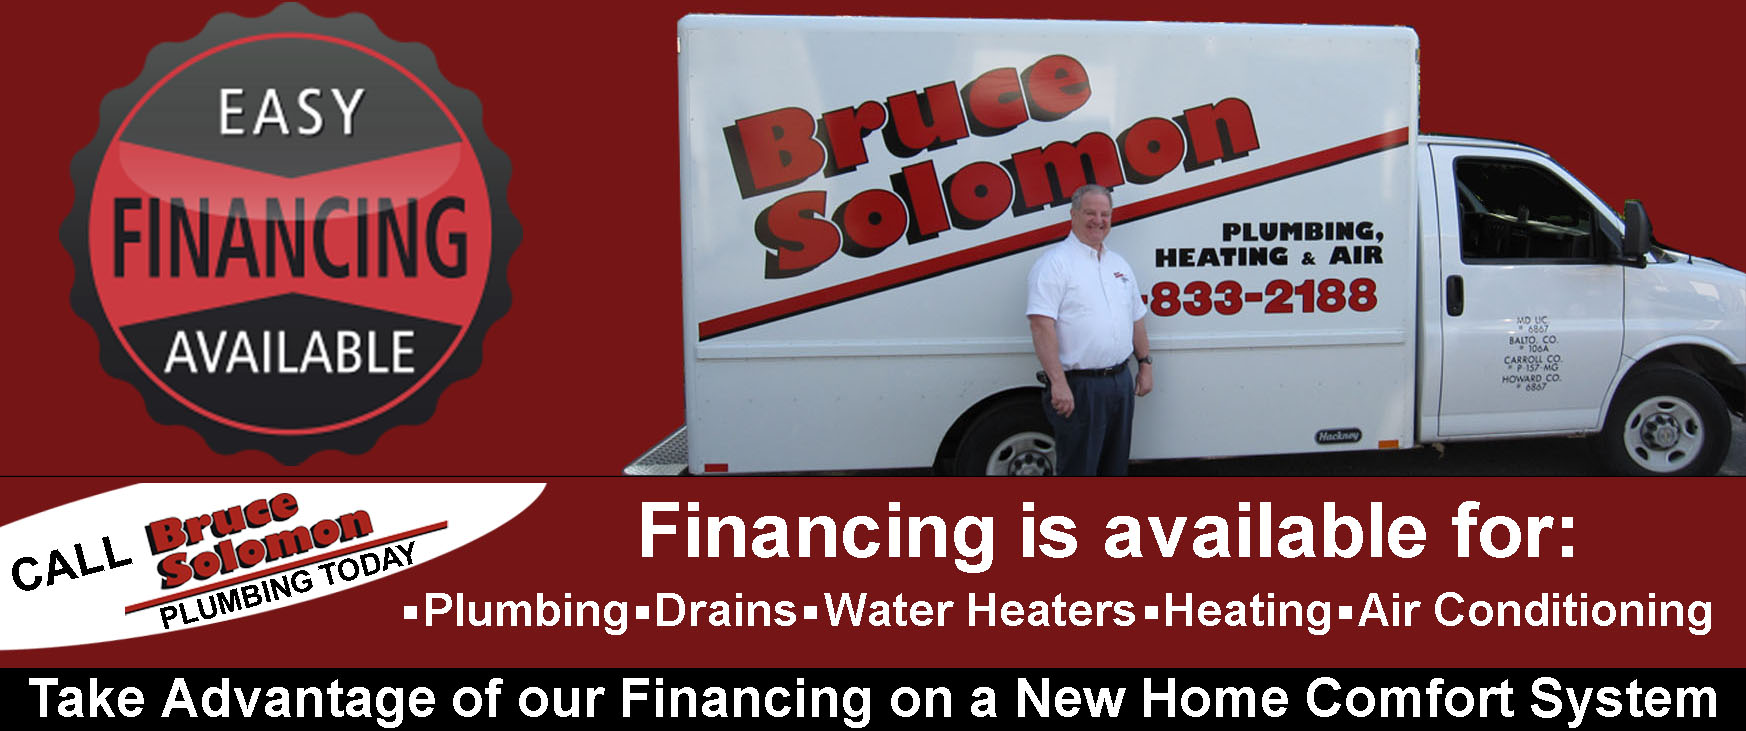 solomon-plumbing-financing-main-graphic